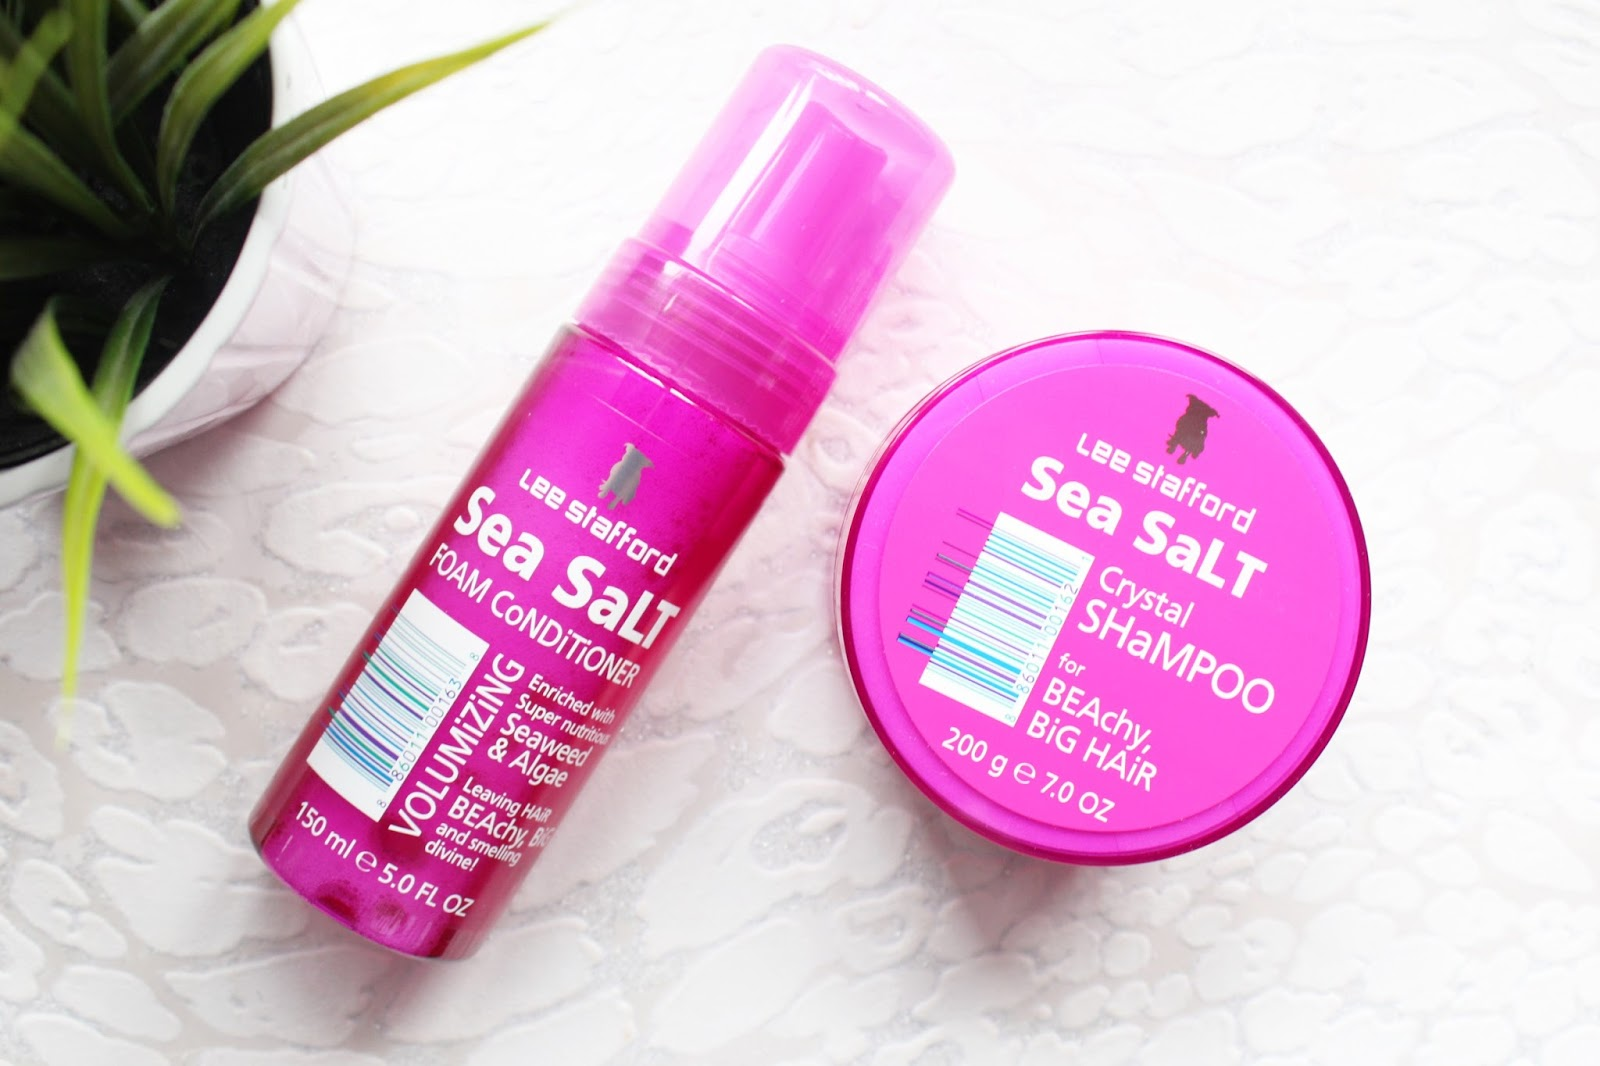 Lee Stafford Sea Salt Hair Care